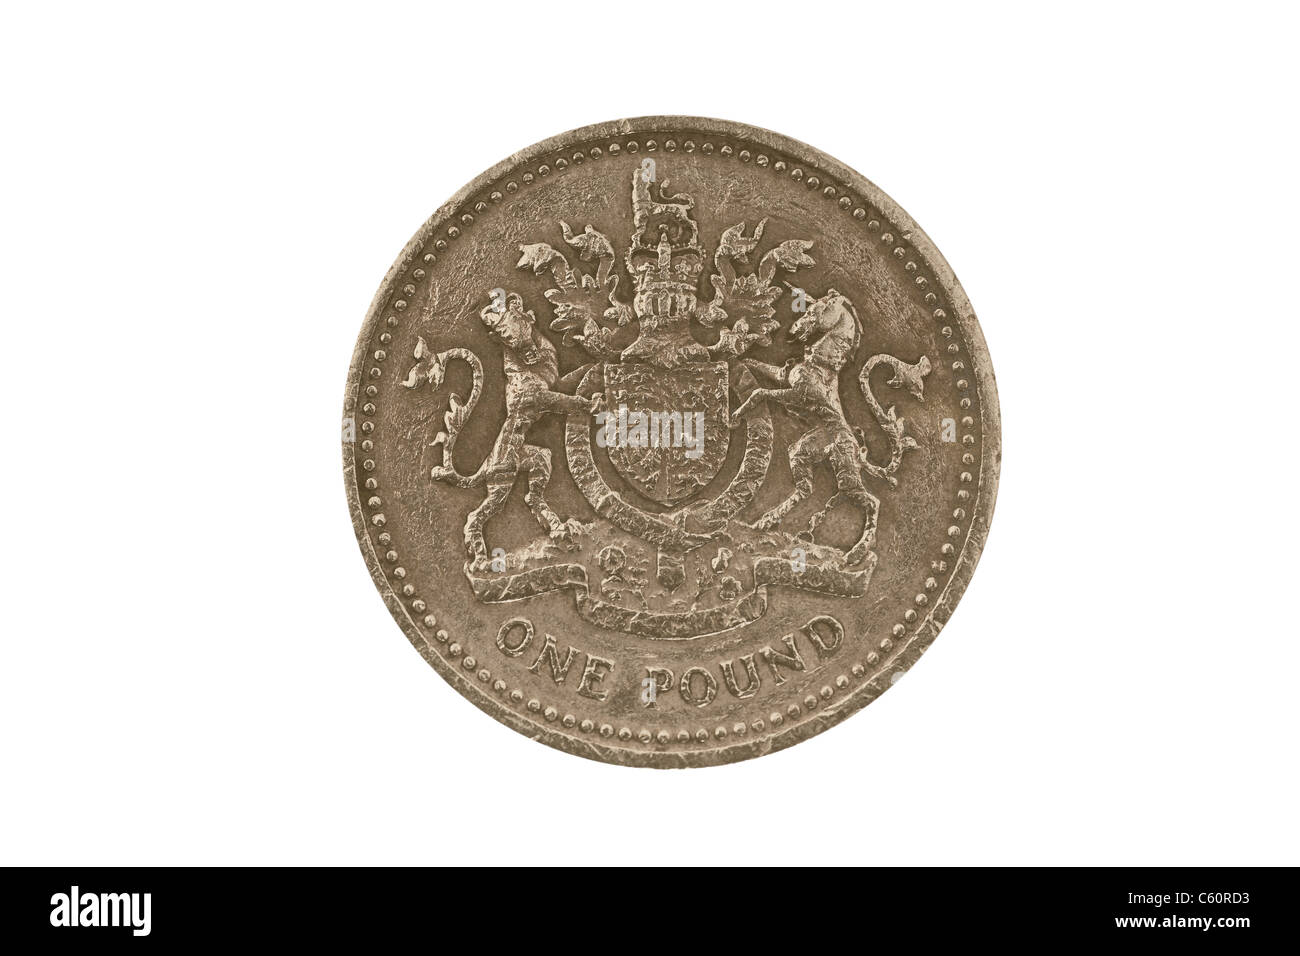 Detail photo of a 1 pound coin from Great Britain from the year 1983 Stock Photo